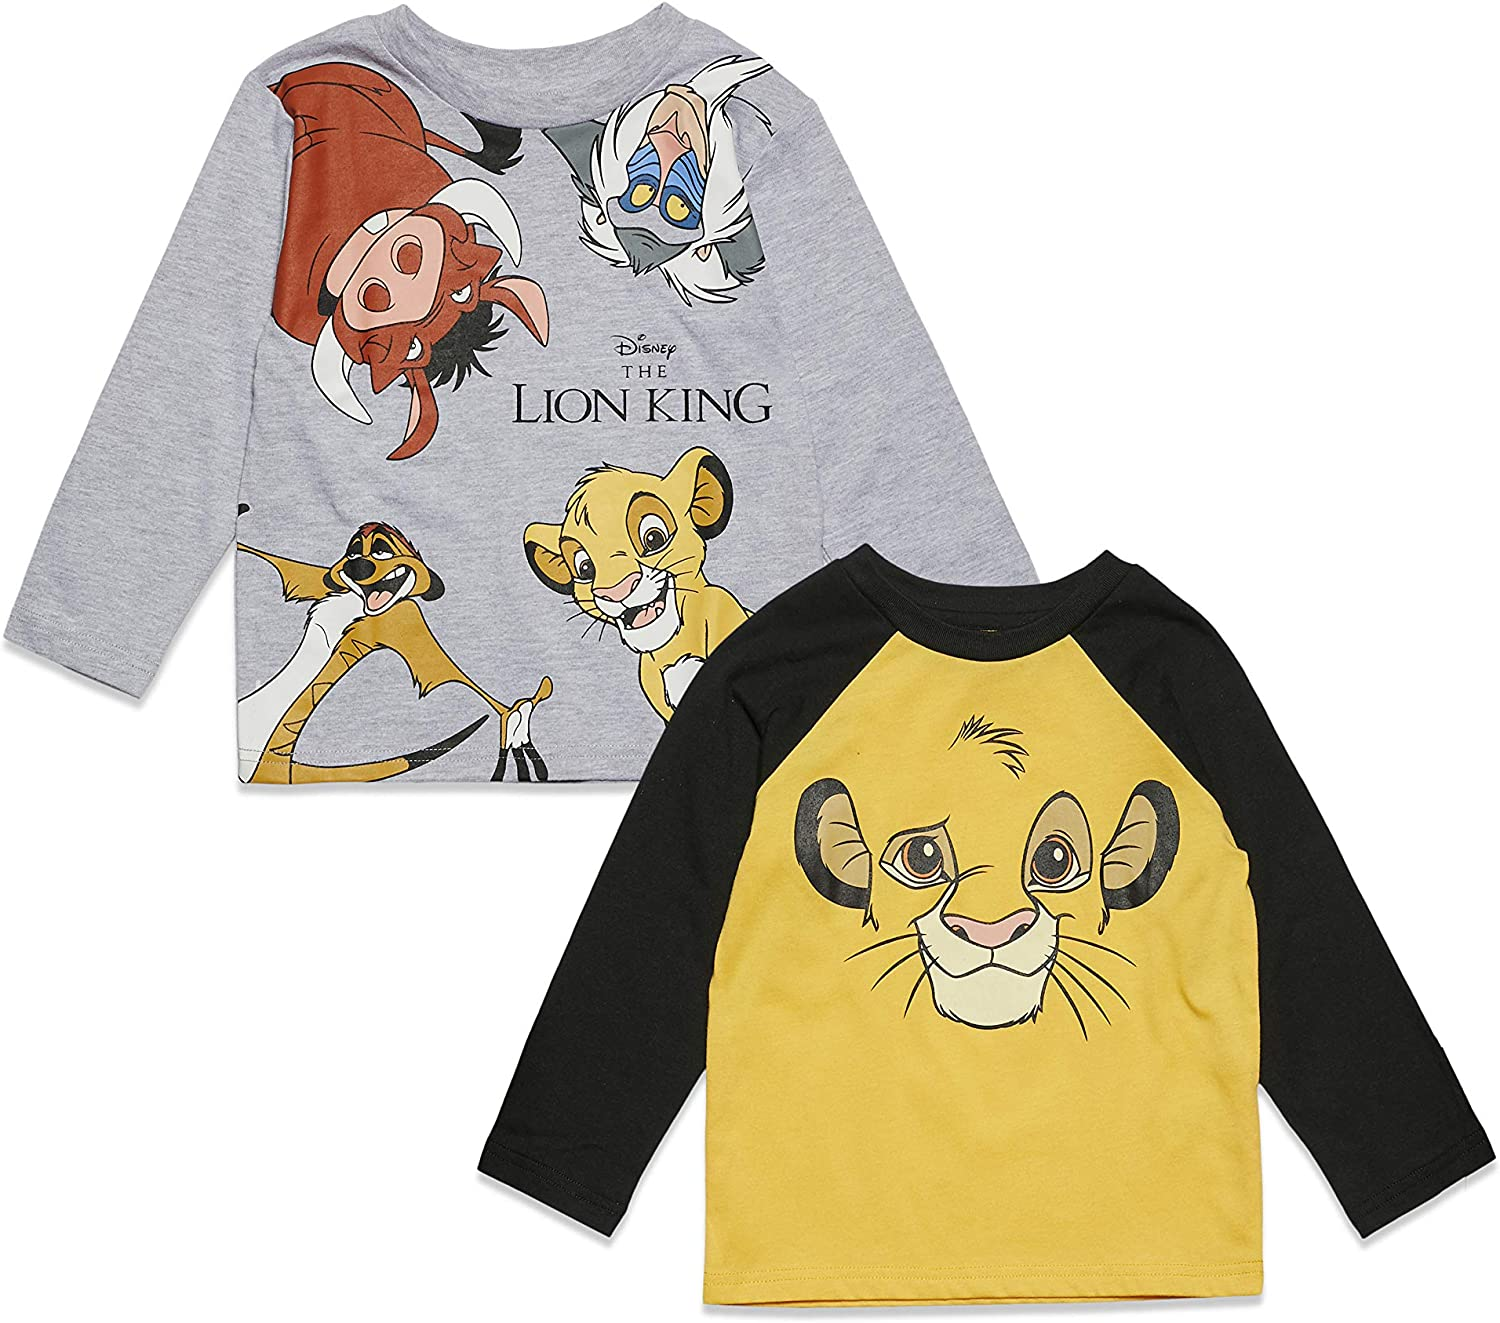 Disney The Lion King 2 Pack Save money Long Yellow Graphic T-Shirts Sleeve Super-cheap